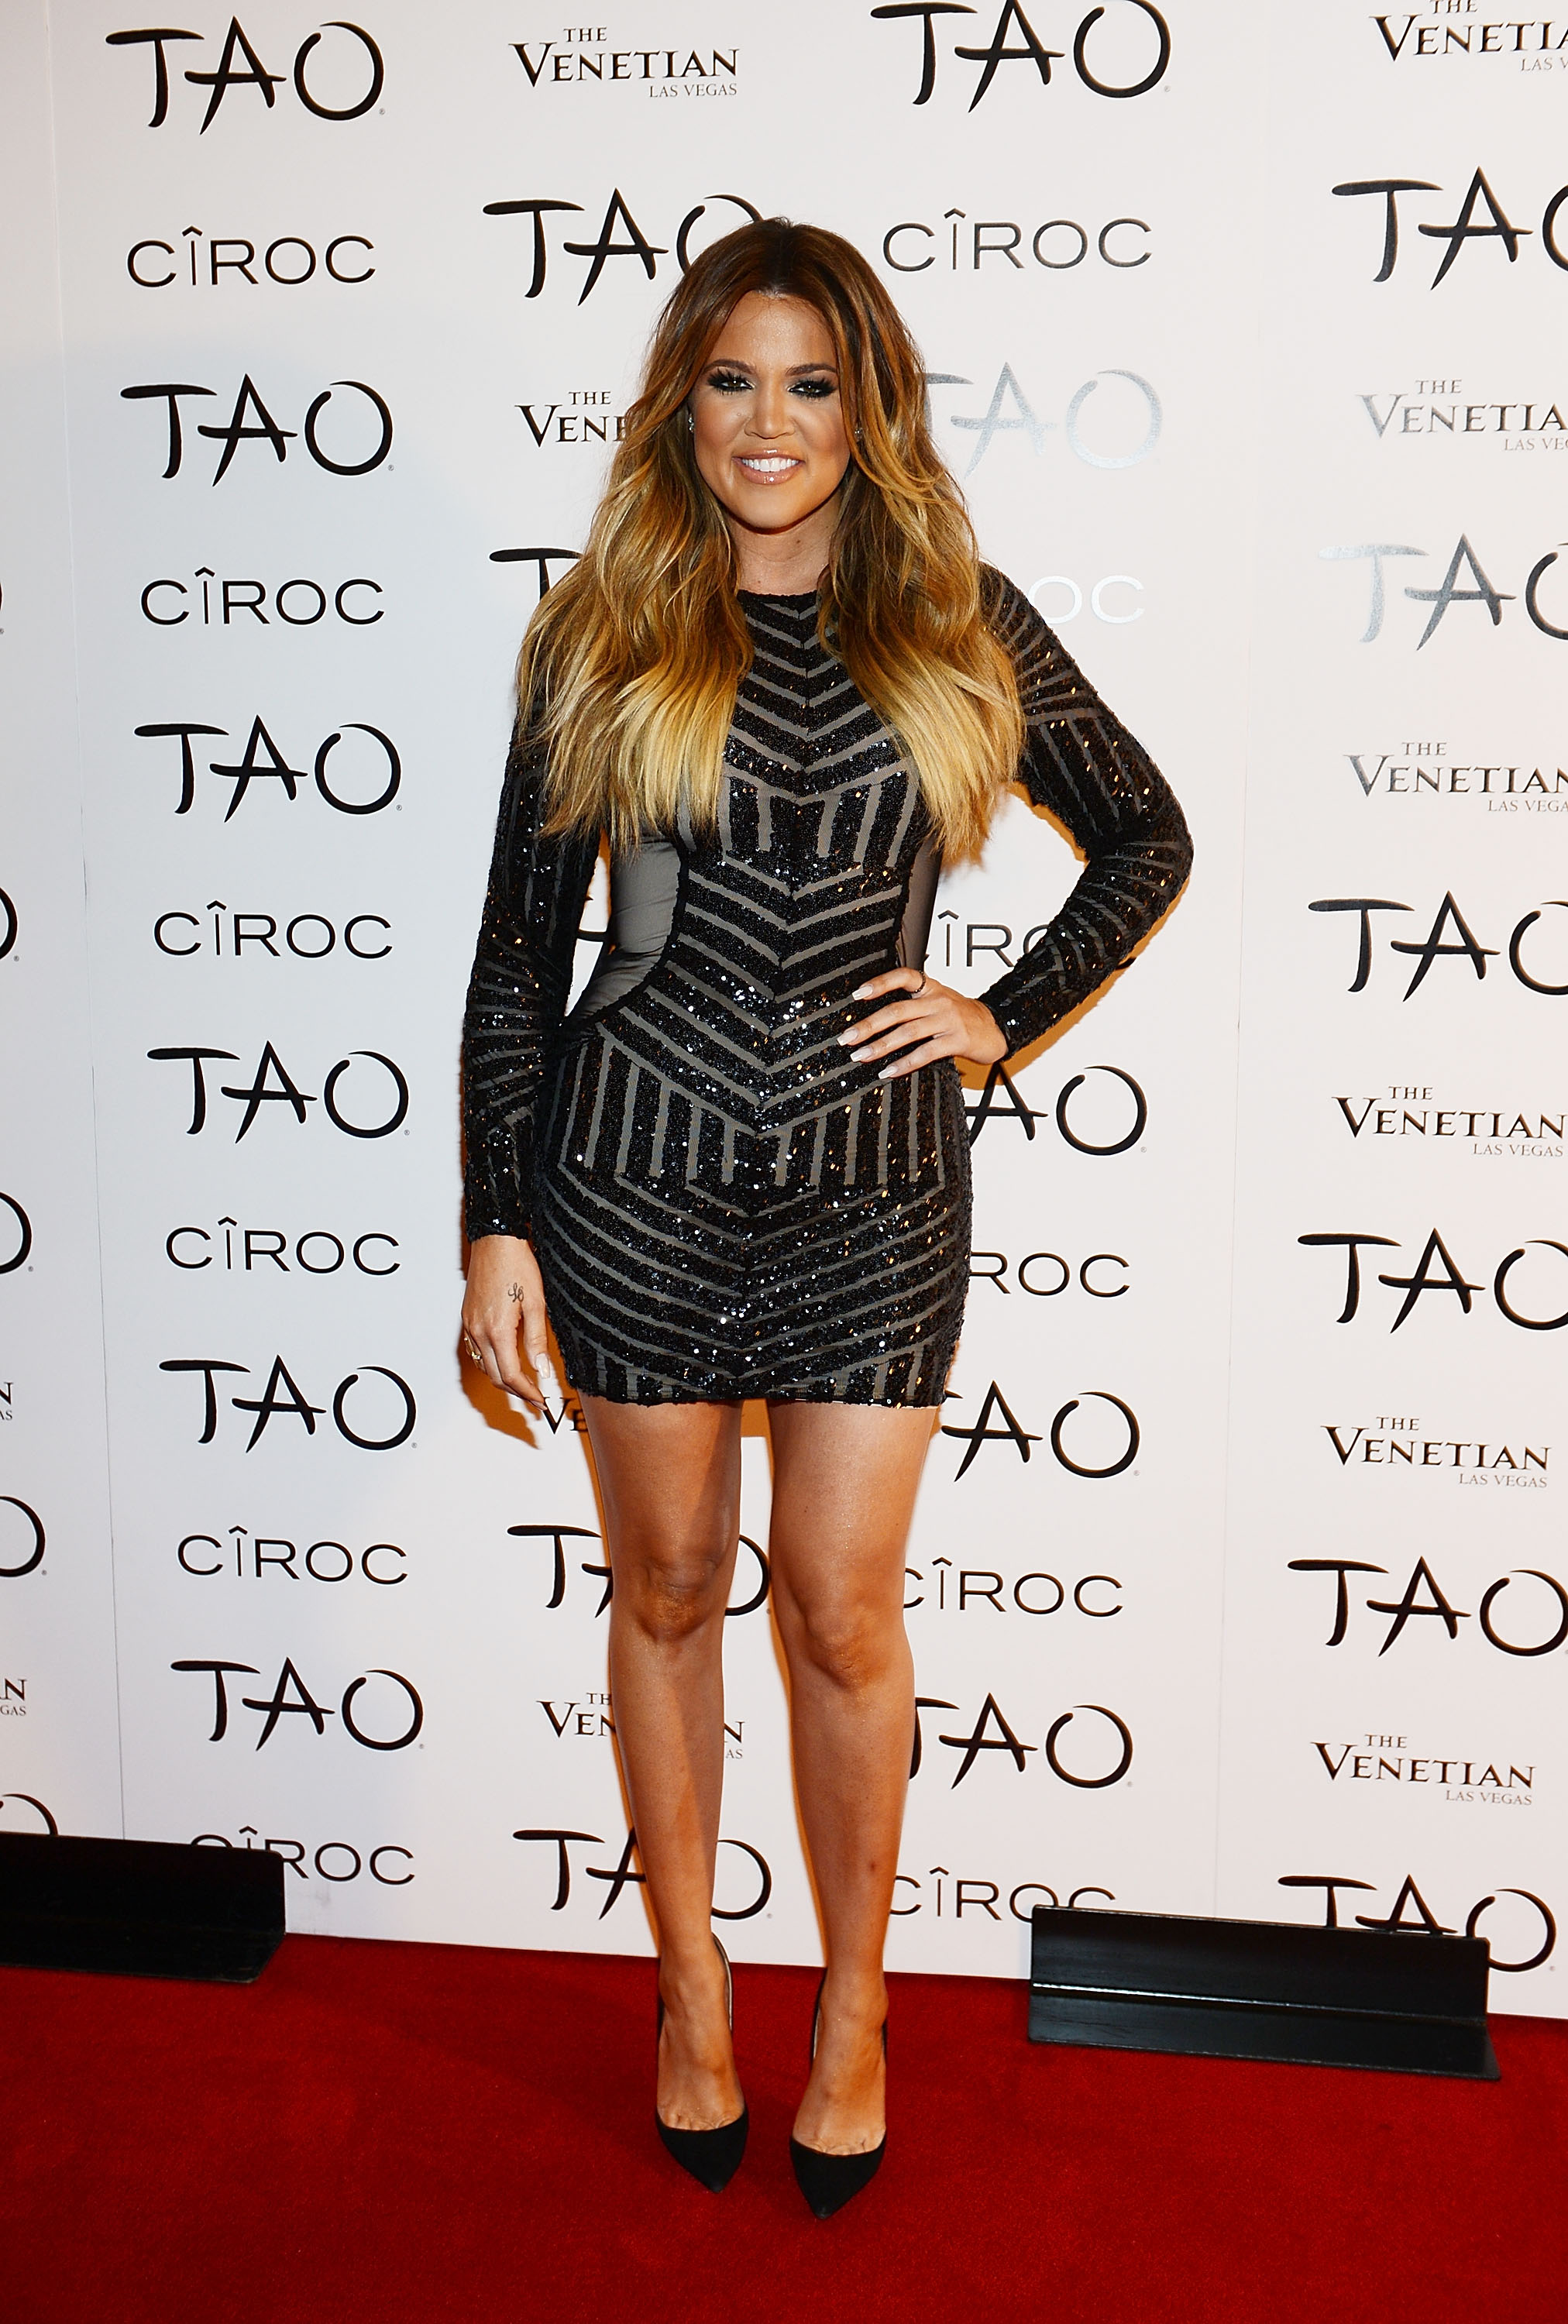 LAS VEGAS, NV - JULY 04: Khloe Kardashian arrives at her 30th birthday party at TAO Nightclub on July 4, 2014 in Las Vegas, Nevada. (Photo by Denise Truscello/WireImage)